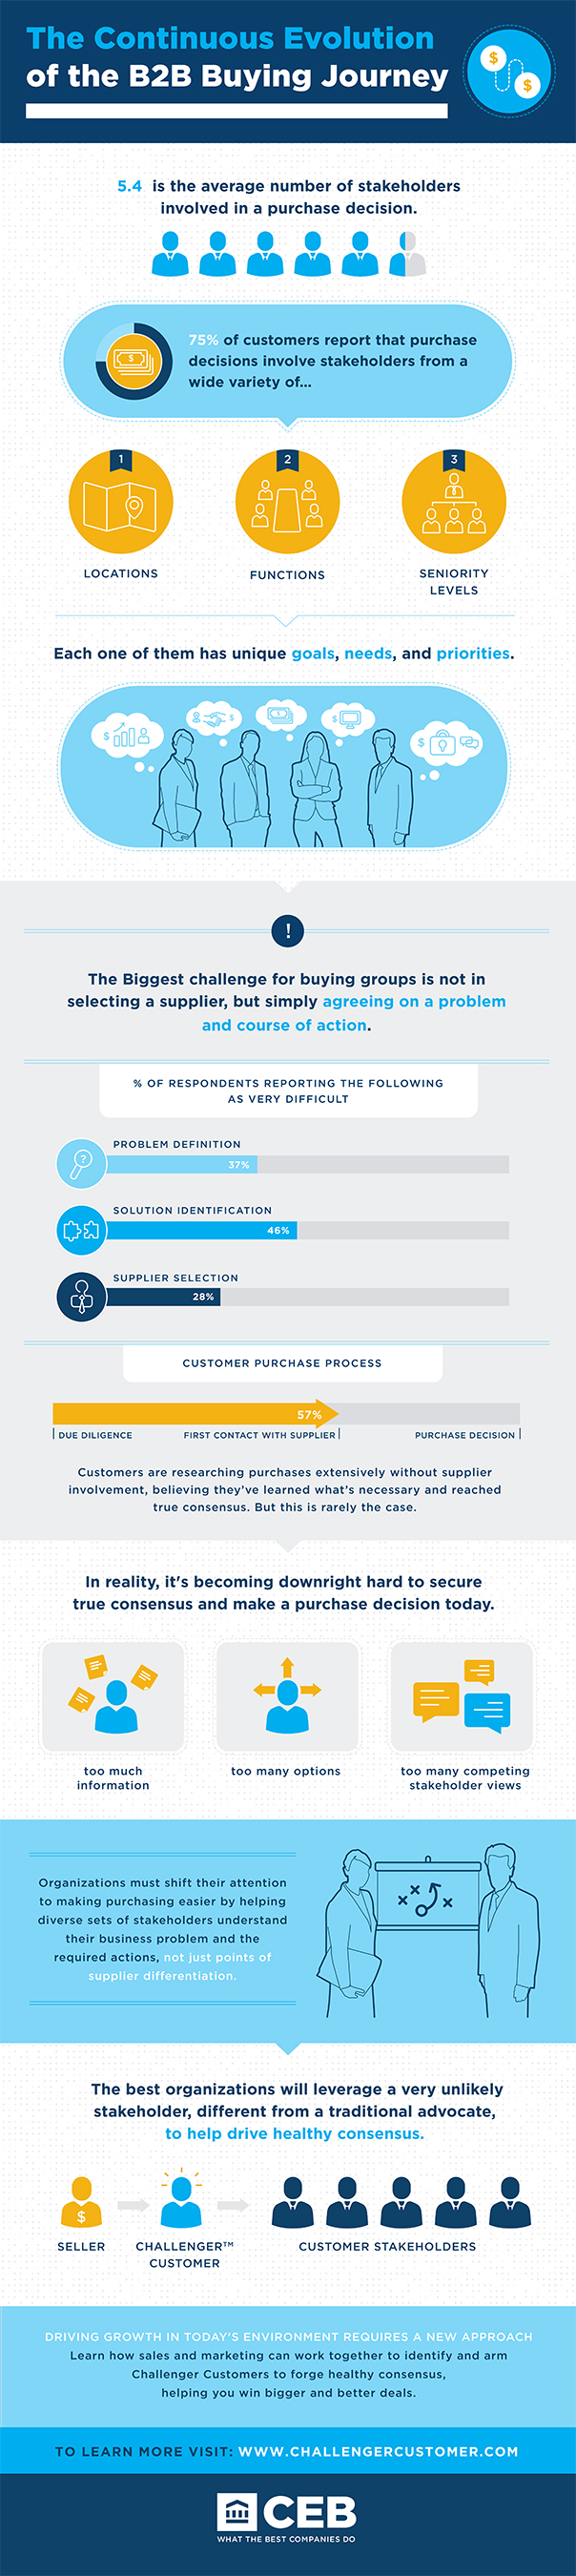 The Continuous Evolution of the B2B Buying Journey